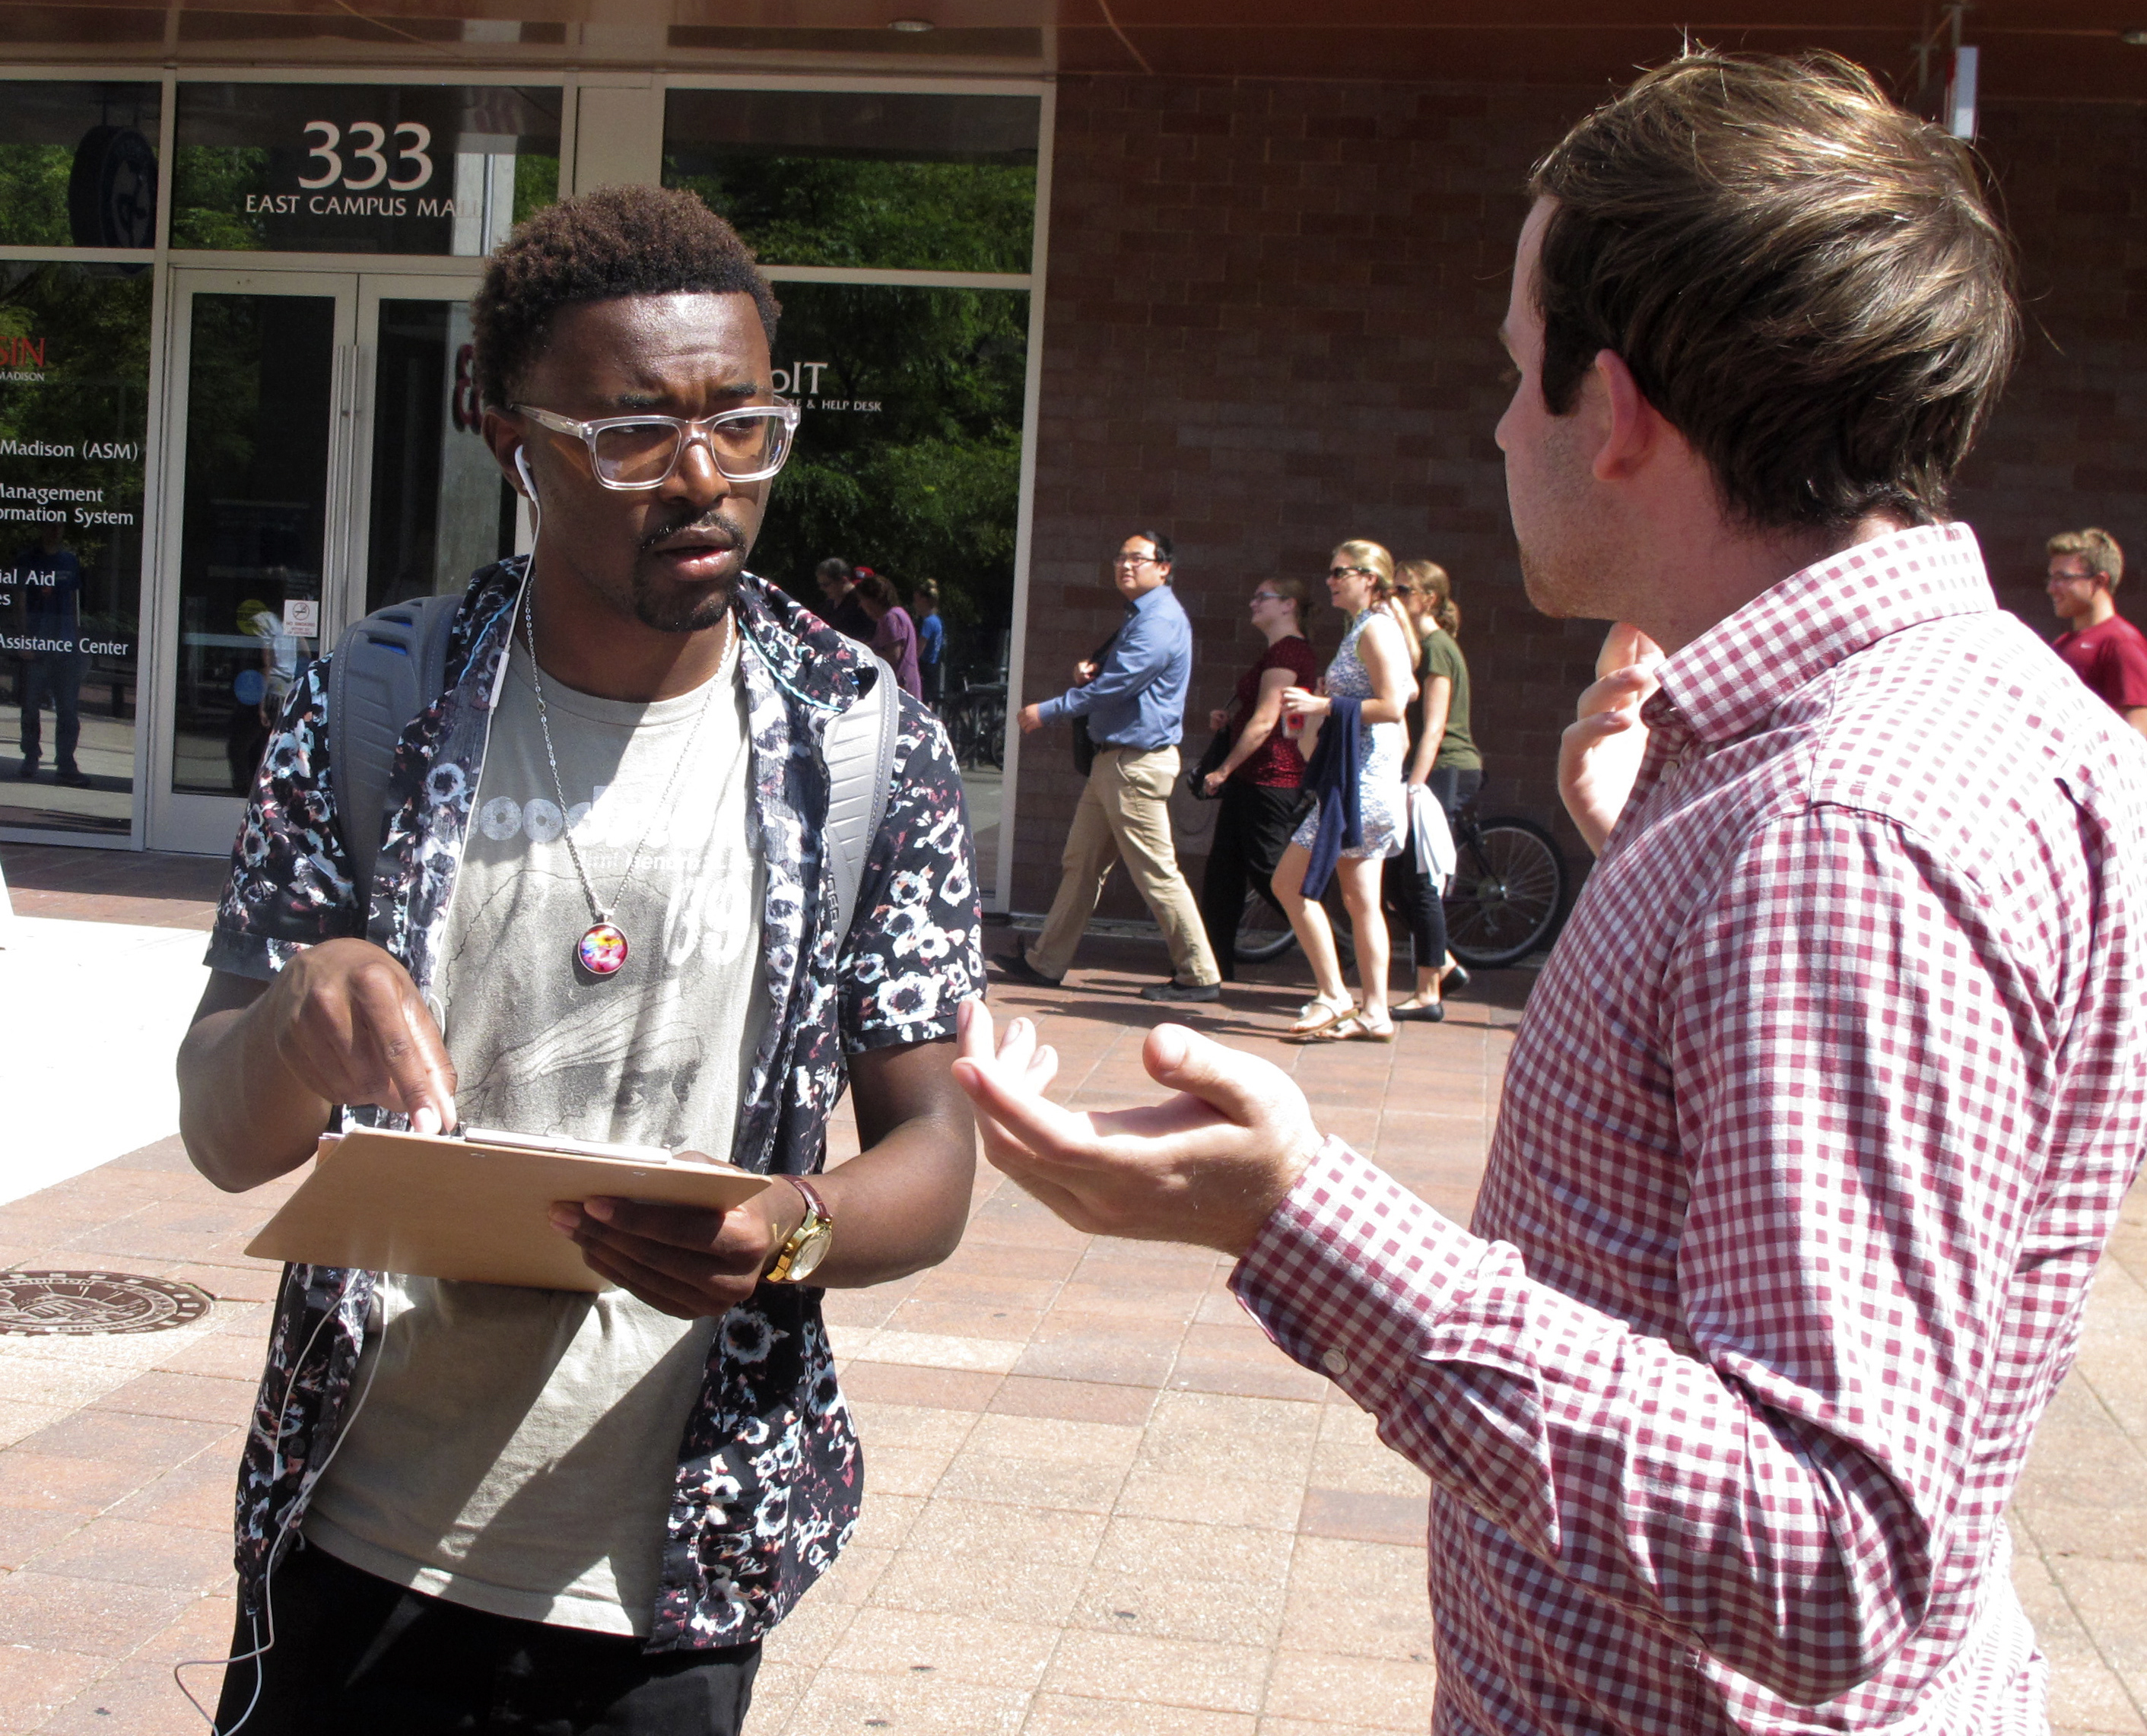 Going To Polls In Madison Felt Like >> Poll Young People Feel Anxious About Election Defendernetwork Com